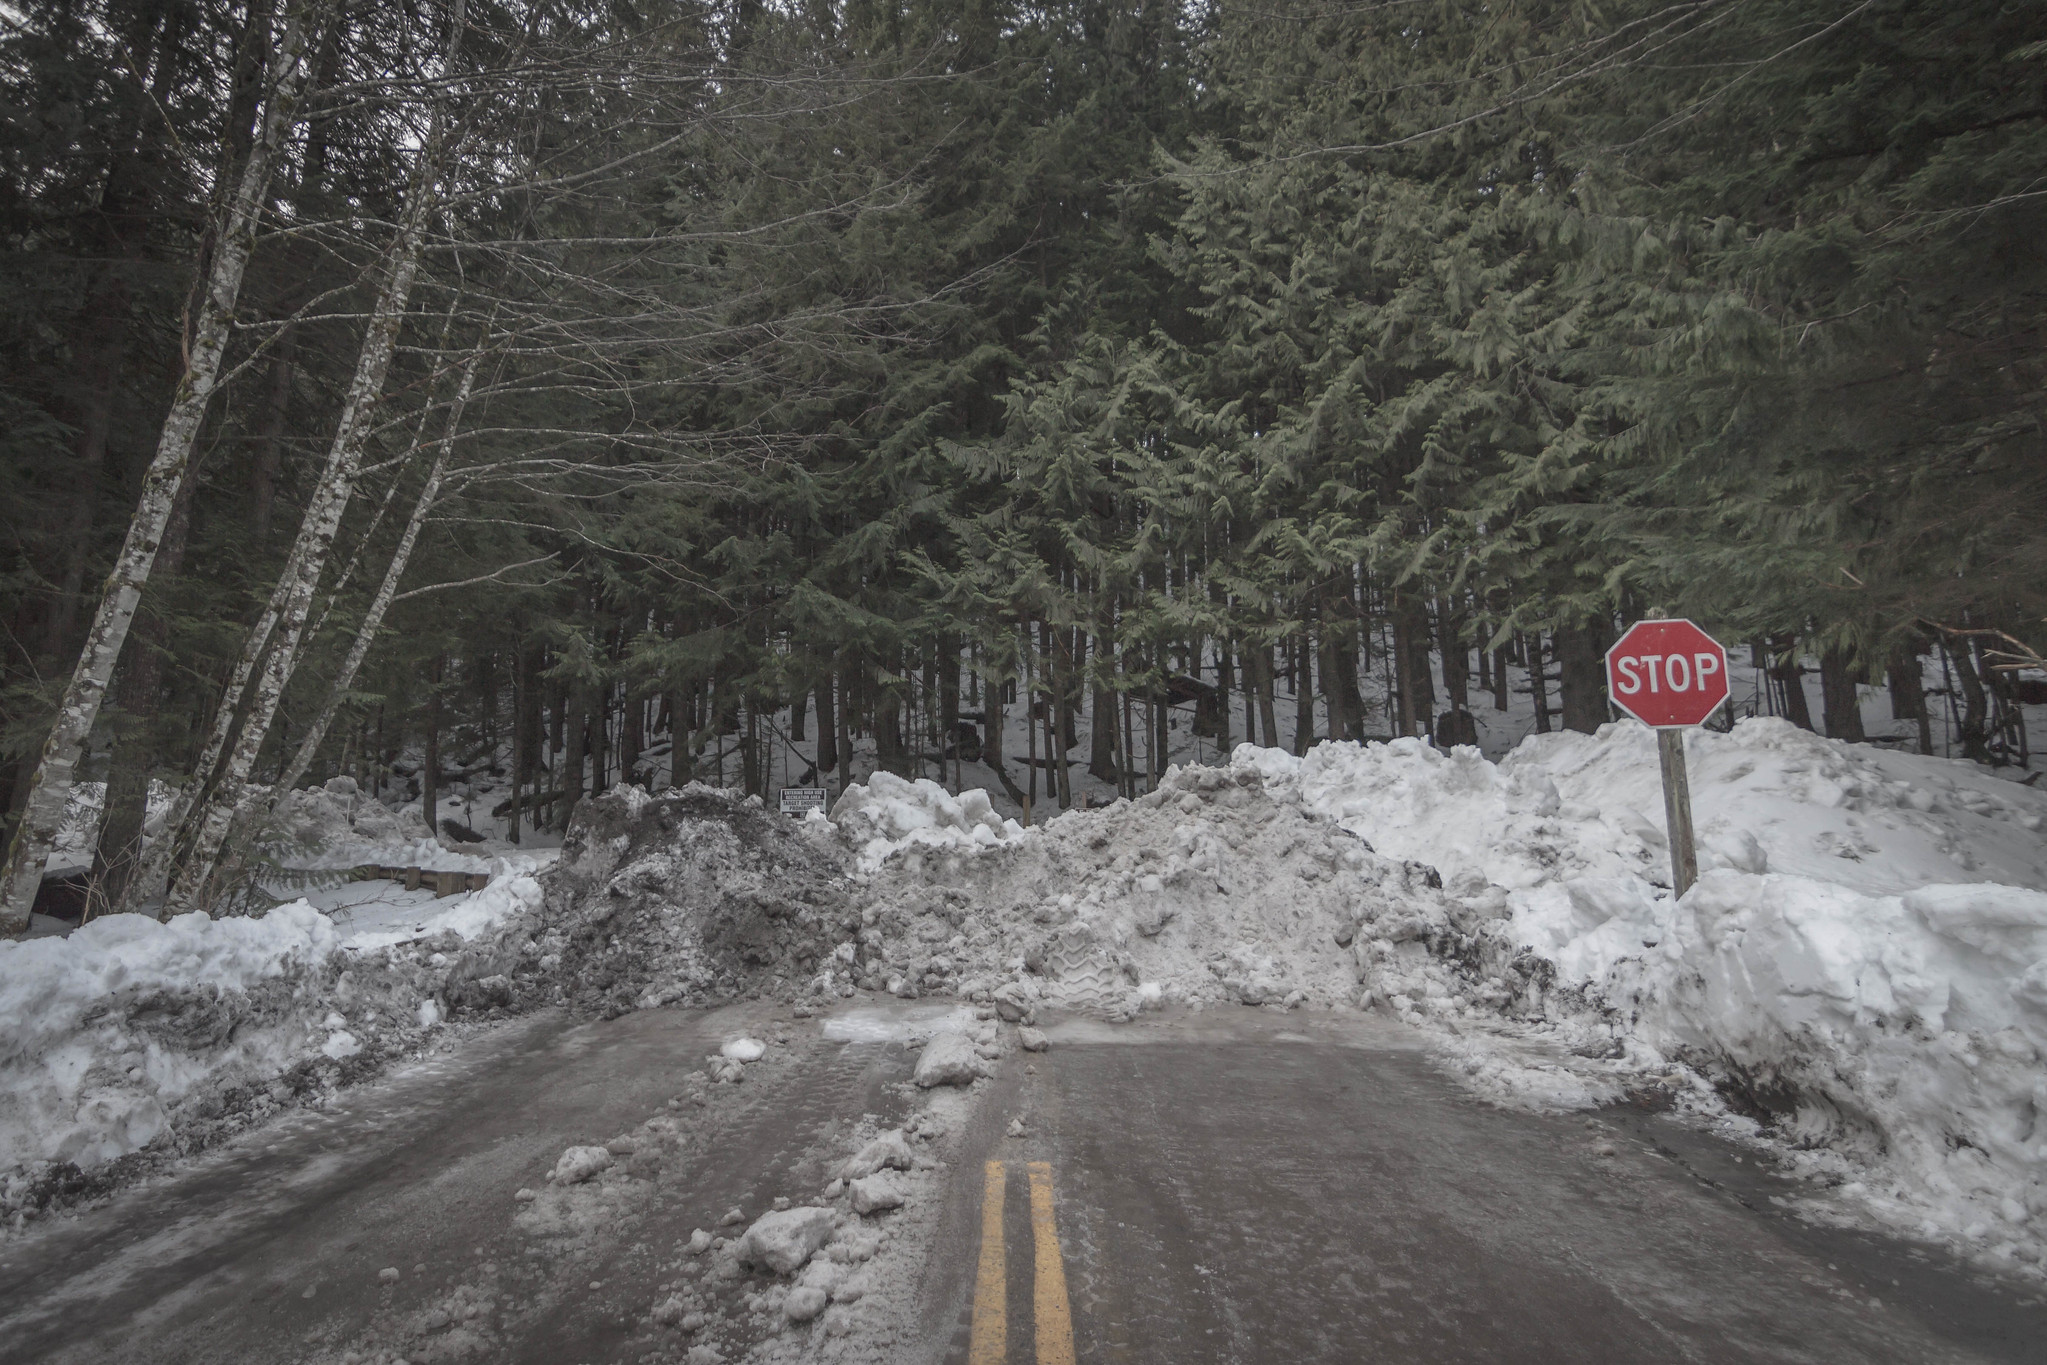 End of the drivable road